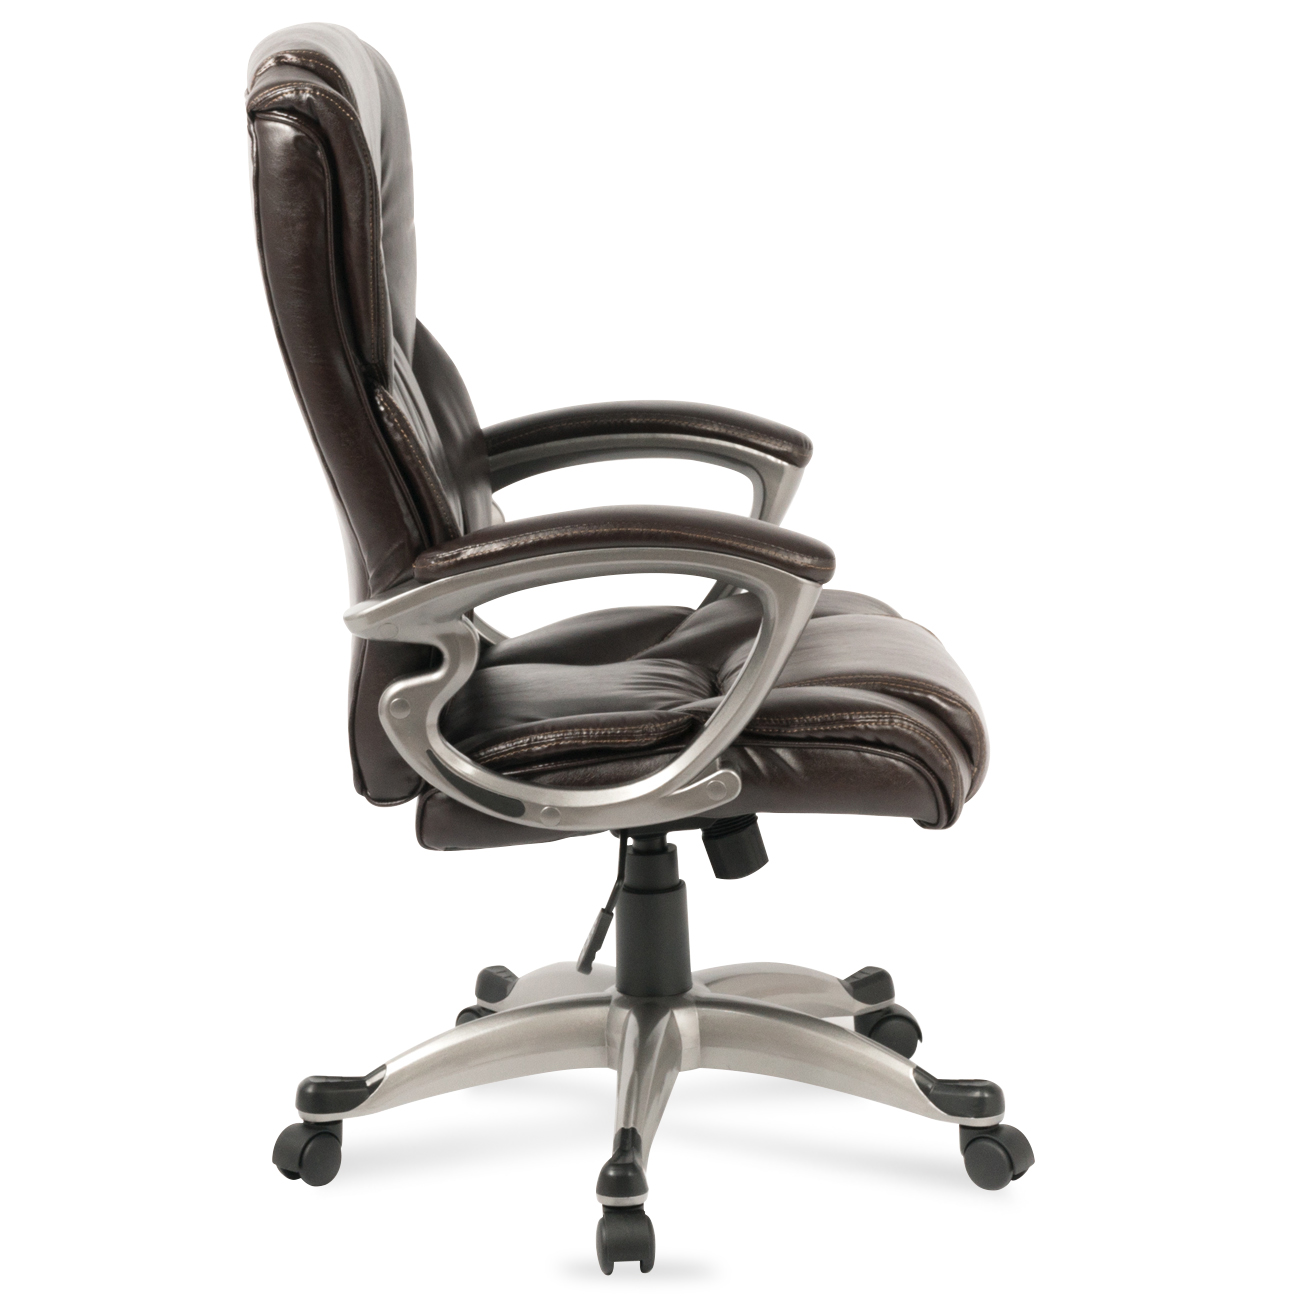 high quality office chairs ergonomic eames uk executive chair back task computer